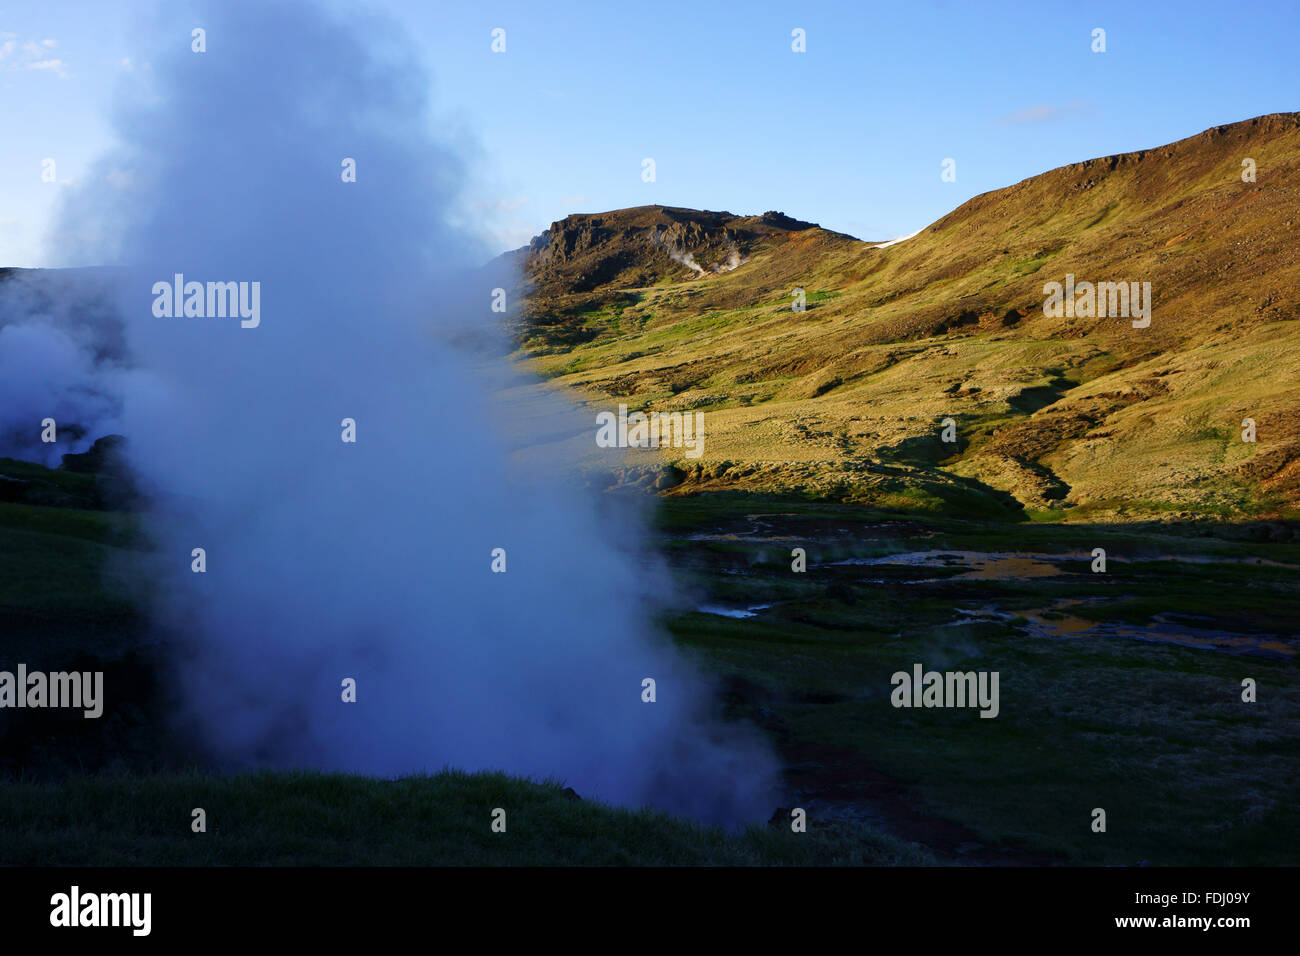 Hot Spring and steaming vent, Hengill mountains, Hveragerdi, SW Iceland - Stock Image